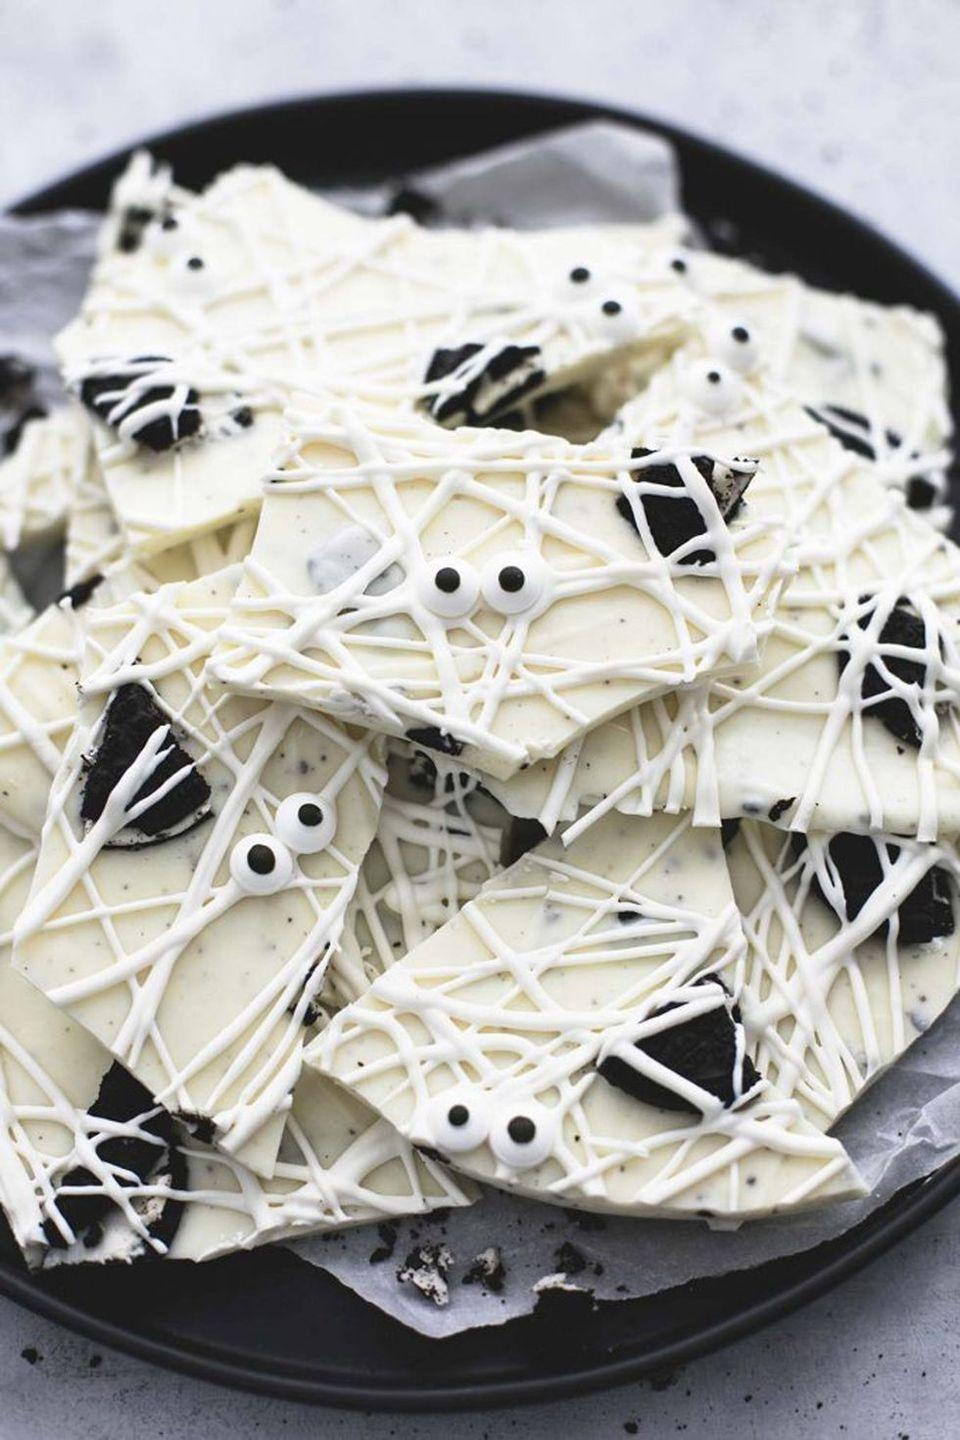 """<p>Got the three ingredients involved here...and just 15 minutes? Then you'll be able to put a plate of this beautiful Halloween dessert in front of your kids before they can say, """"Boo!""""</p><p><strong>Get the recipe at <a href=""""https://www.lecremedelacrumb.com/3-ingredient-cookies-n-cream-mummy-bark"""" rel=""""nofollow noopener"""" target=""""_blank"""" data-ylk=""""slk:Creme de la Crumb"""" class=""""link rapid-noclick-resp"""">Creme de la Crumb</a>.</strong></p><p><a class=""""link rapid-noclick-resp"""" href=""""https://go.redirectingat.com?id=74968X1596630&url=https%3A%2F%2Fwww.walmart.com%2Fip%2FThe-Pioneer-Woman-Classic-Charm-16-Inch-Rectangular-Platter-Blue%2F975428930&sref=https%3A%2F%2Fwww.thepioneerwoman.com%2Ffood-cooking%2Fmeals-menus%2Fg32110899%2Fbest-halloween-desserts%2F"""" rel=""""nofollow noopener"""" target=""""_blank"""" data-ylk=""""slk:SHOP PLATTERS"""">SHOP PLATTERS </a></p>"""